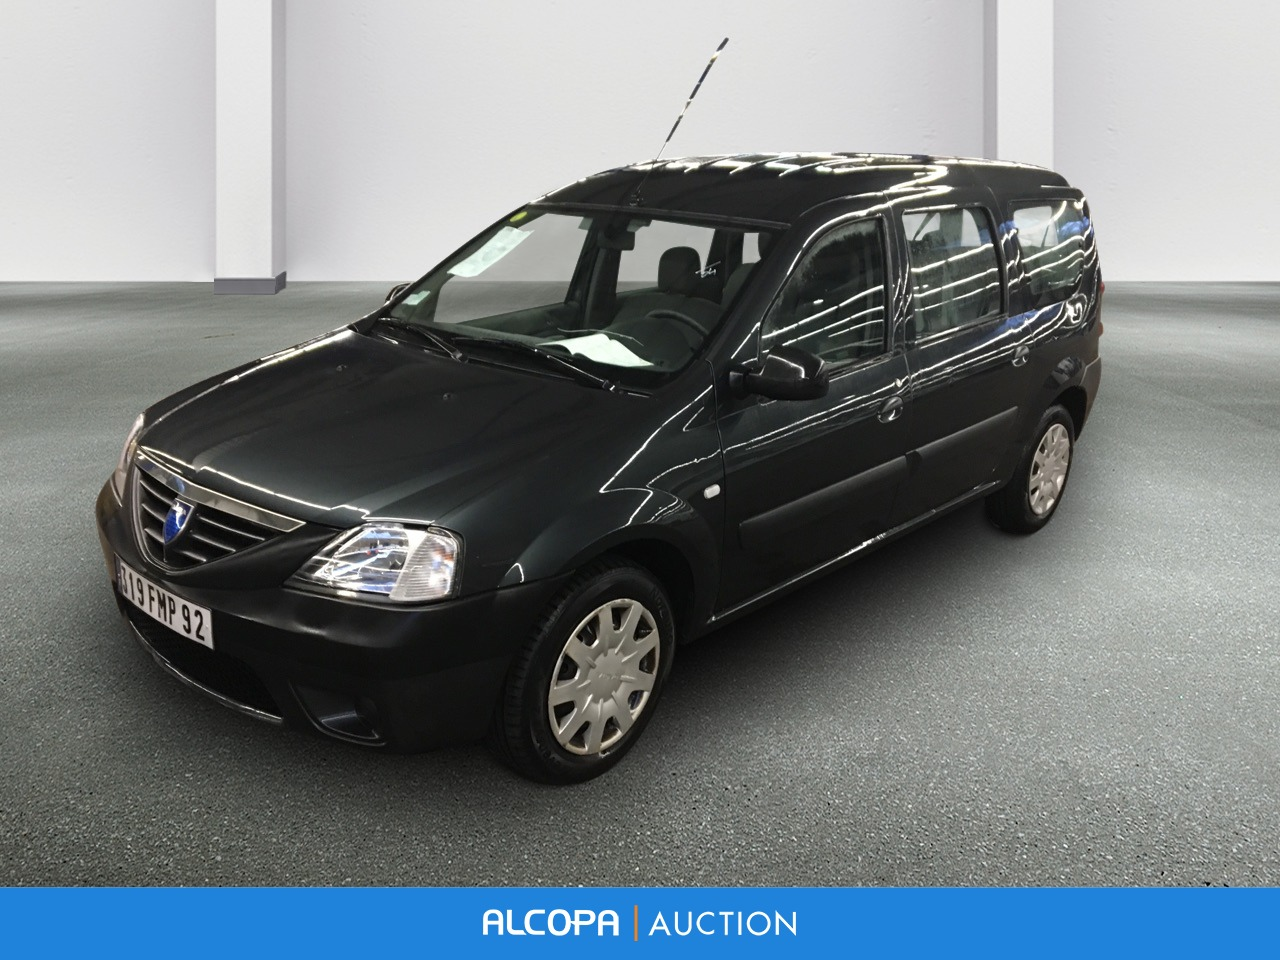 dacia logan mcv 10 2008 11 2012 logan mcv 1 6 mpi 7 places ambiance alcopa auction. Black Bedroom Furniture Sets. Home Design Ideas